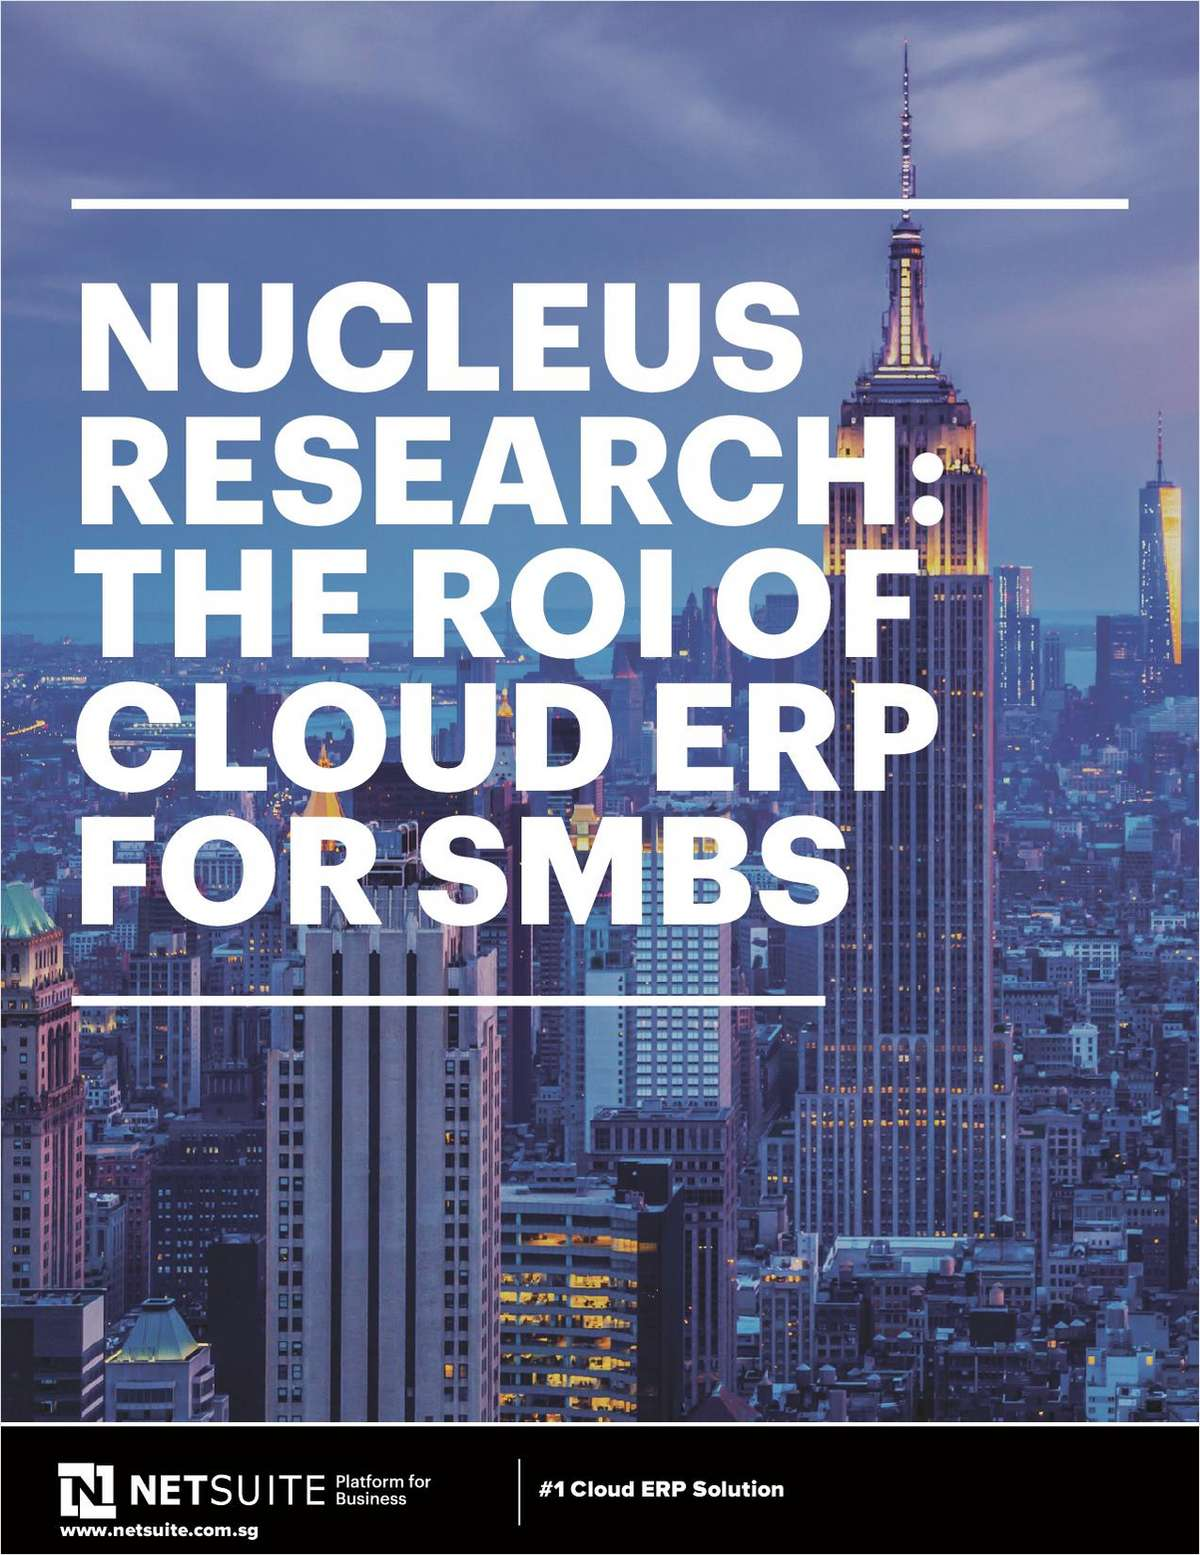 Nucleus Research: The ROI of Cloud ERP for SMBs